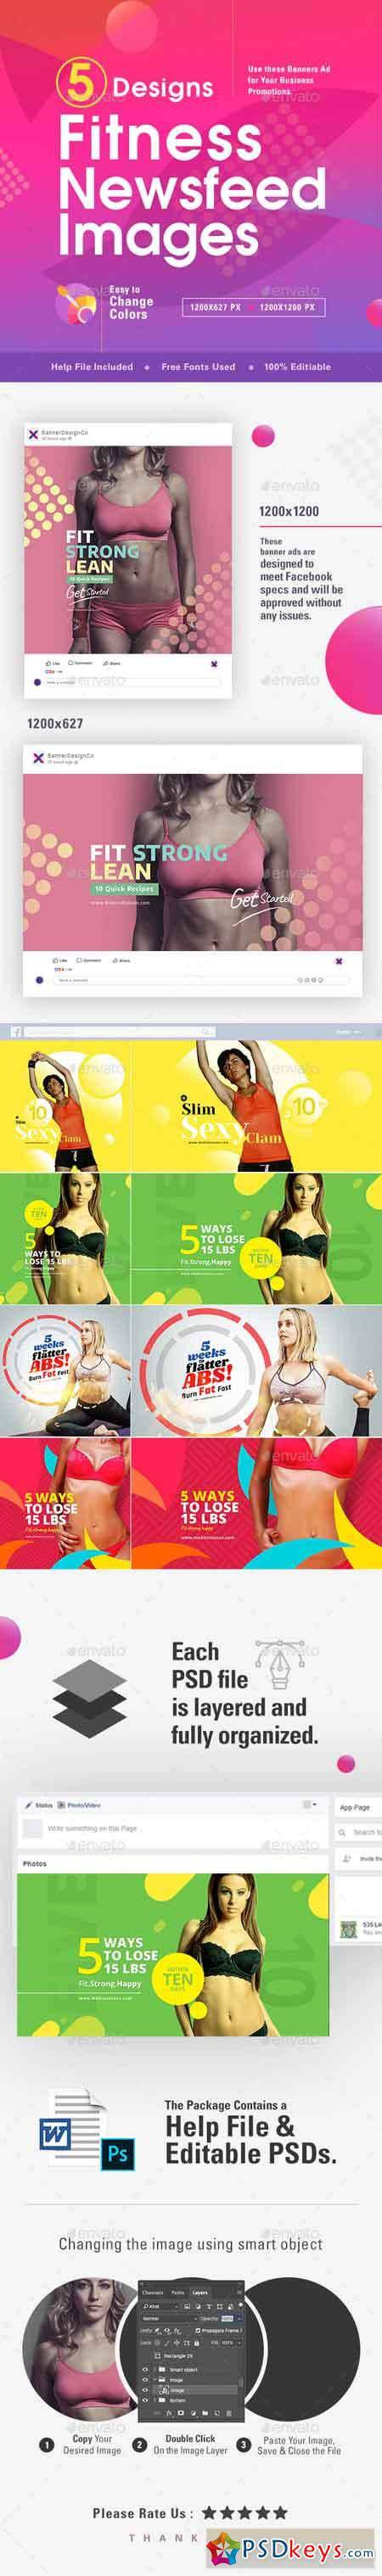 Fitness Social Media Banners - 10 Designs 22557843